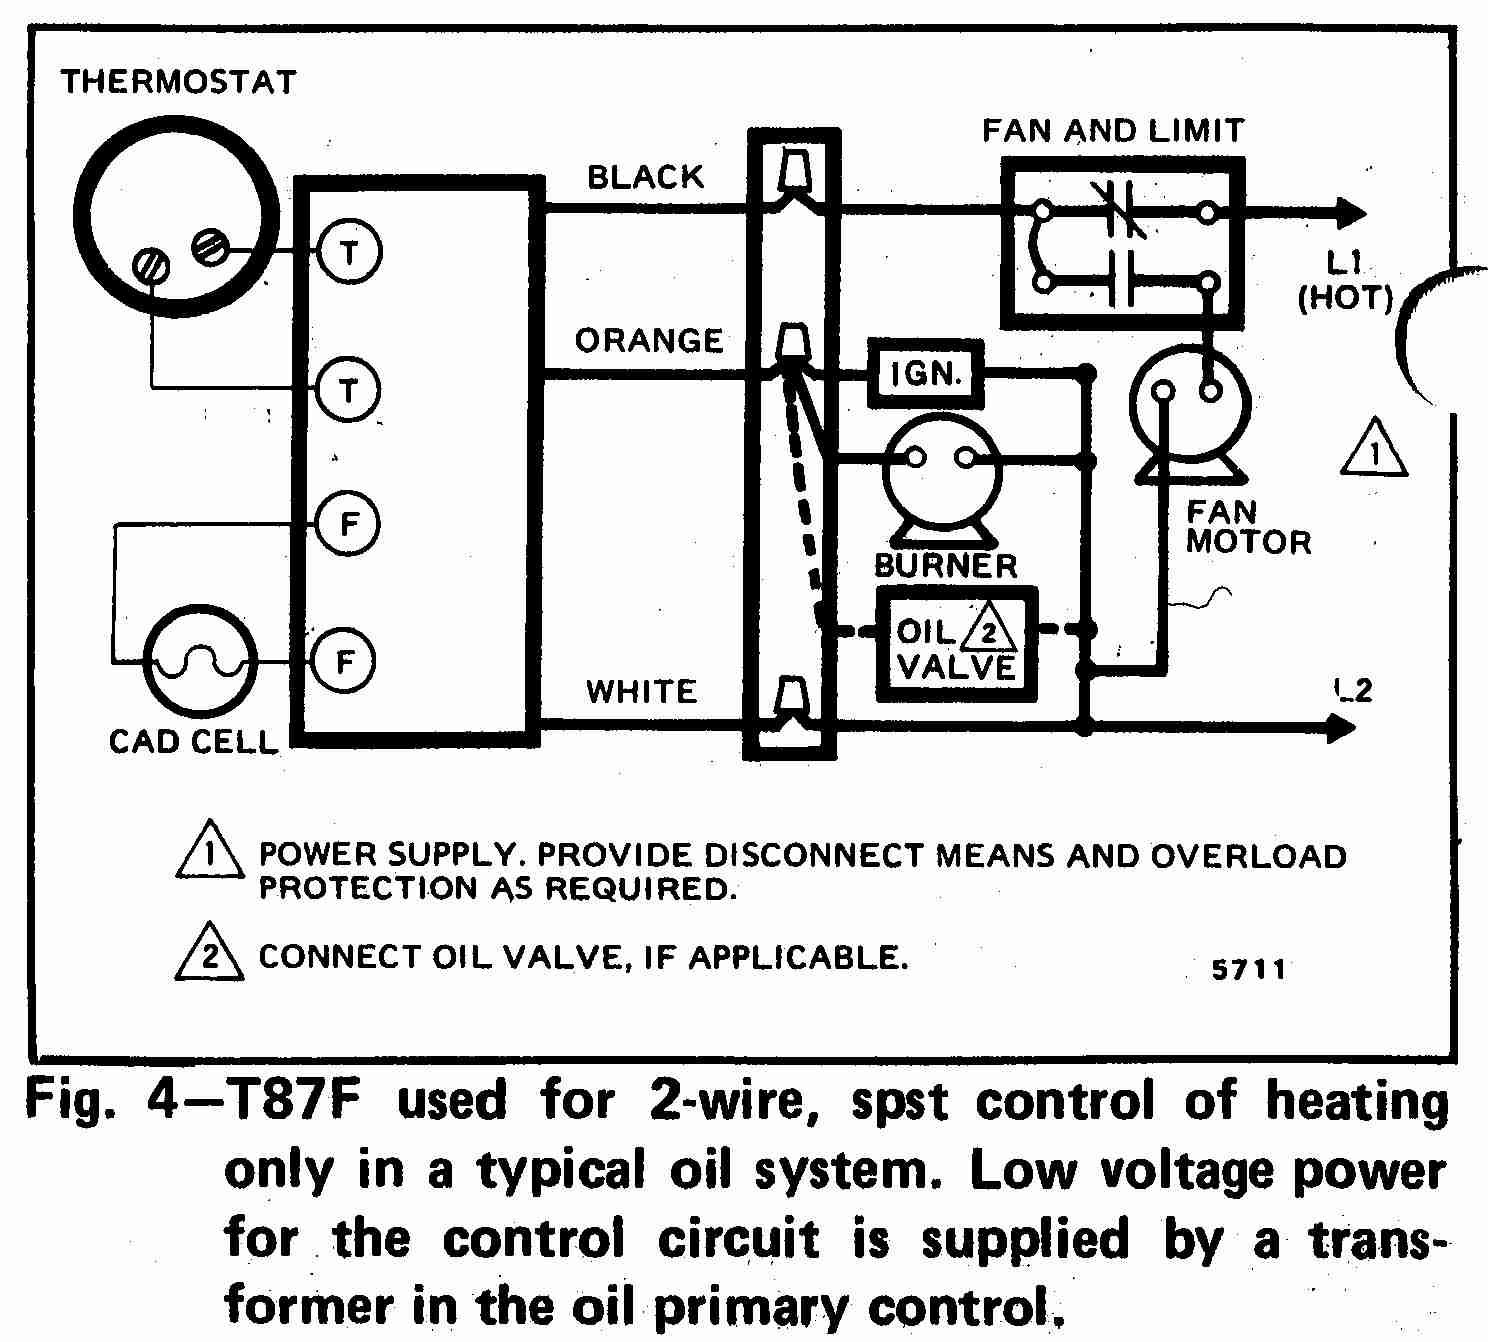 Diagram Guide To Wiring Connections For Room Thermostats Wiring Diagram Full Version Hd Quality Wiring Diagram Wichitaautocare Histoweb Fr